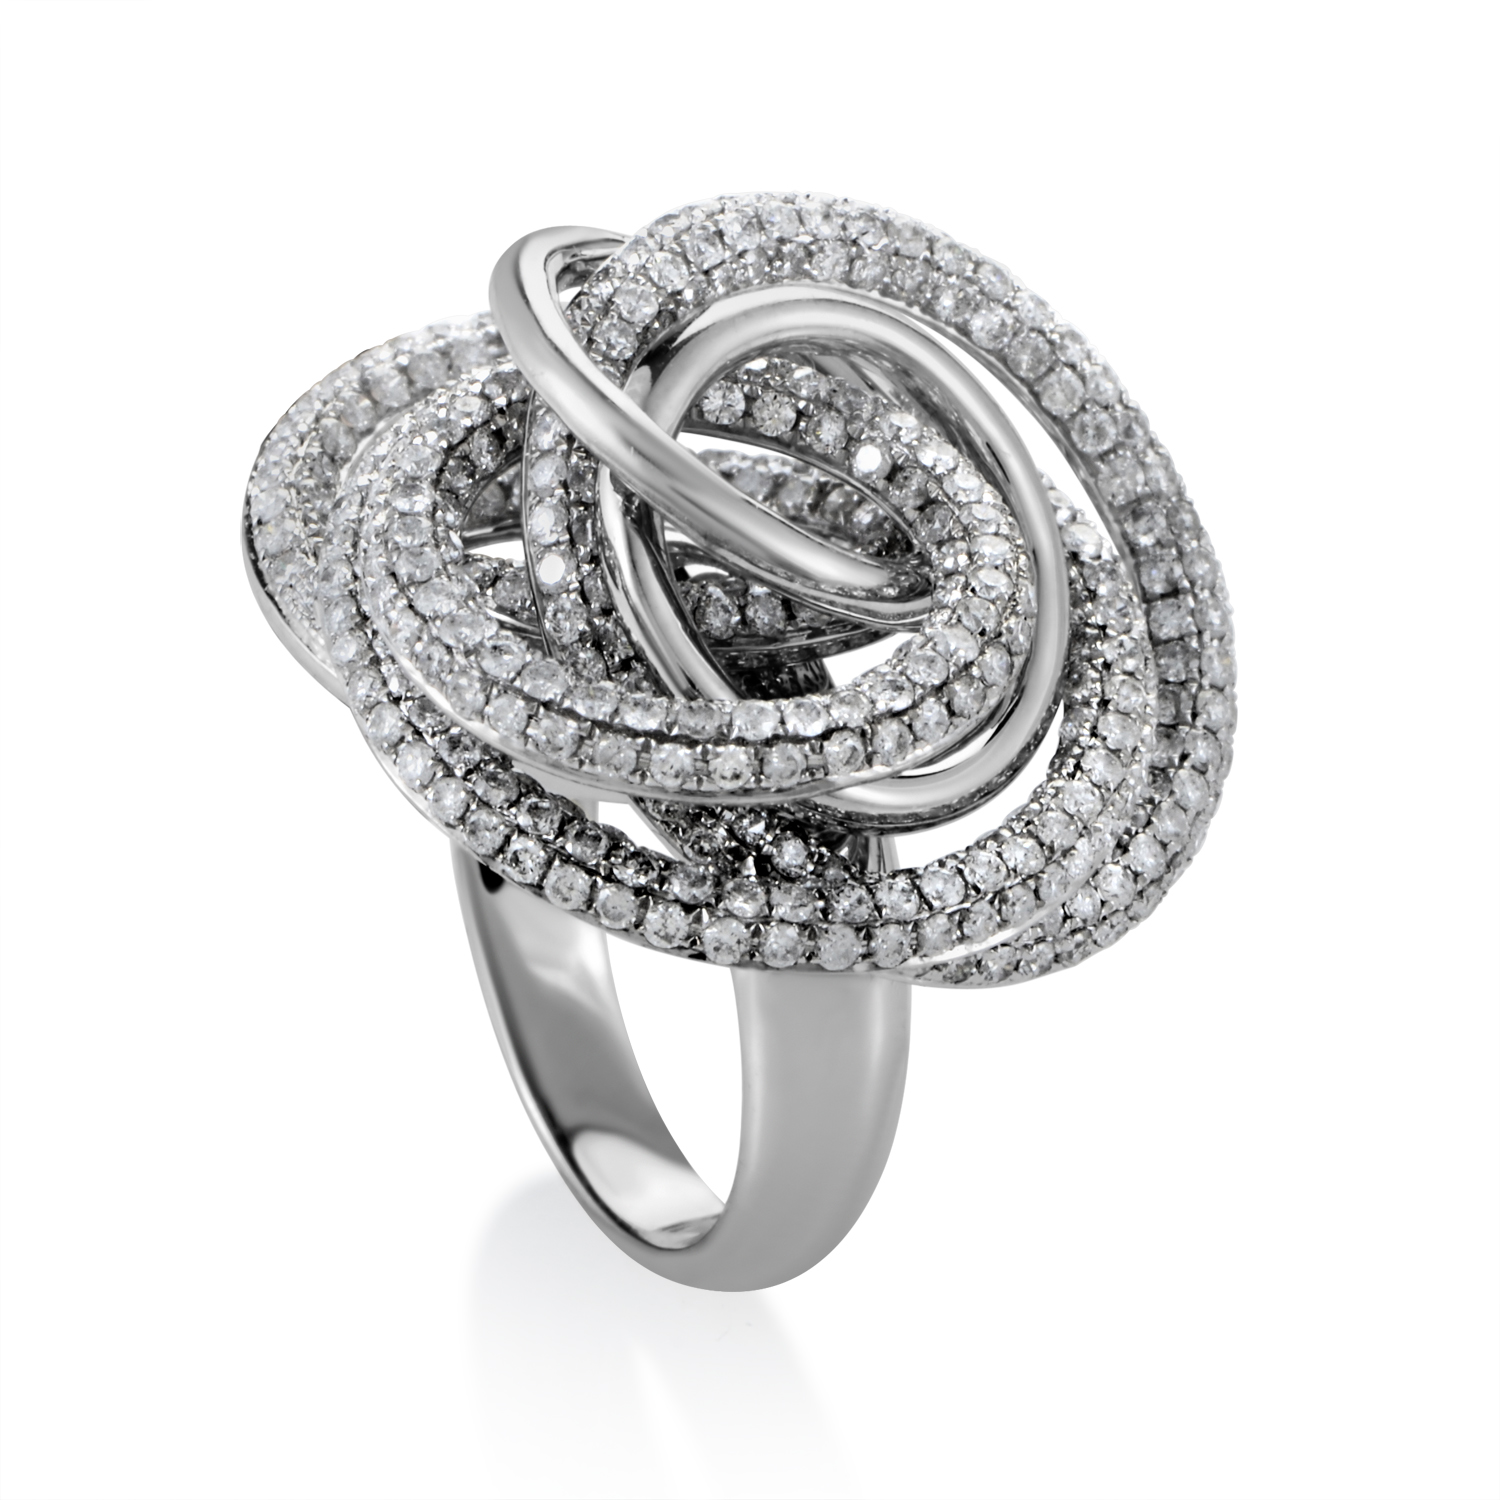 18K White Gold Swirling Cluster Diamond Ring CRR8129